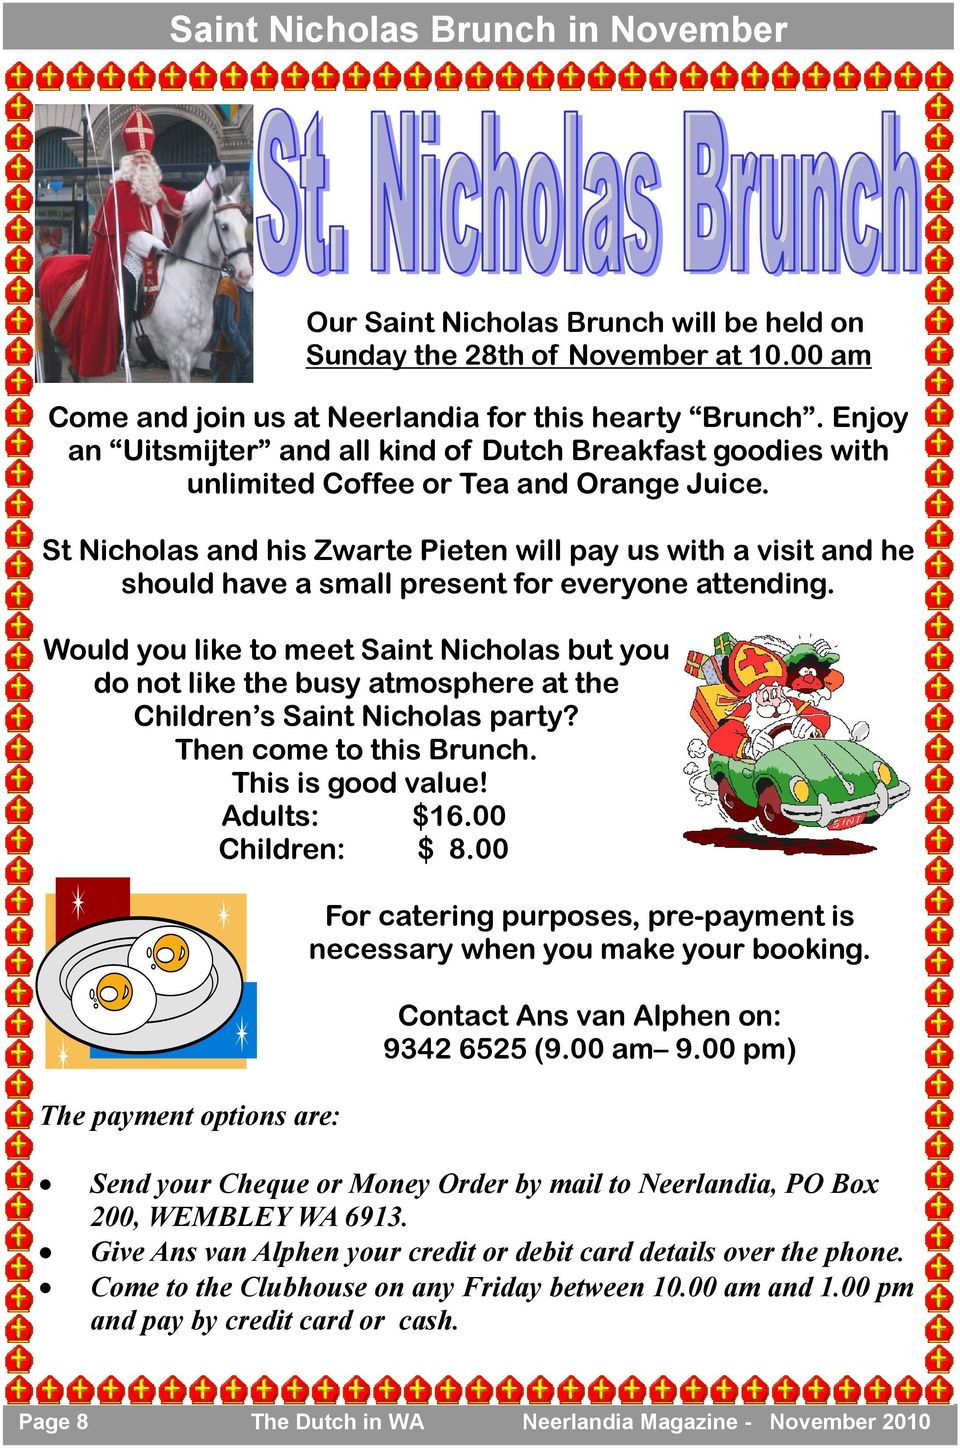 Would you like to meet Saint Nicholas but you do not like the busy atmosphere at the Children s Saint Nicholas party? Then come to this Brunch. This is good value! Adults: $16.00 Children: $ 8.